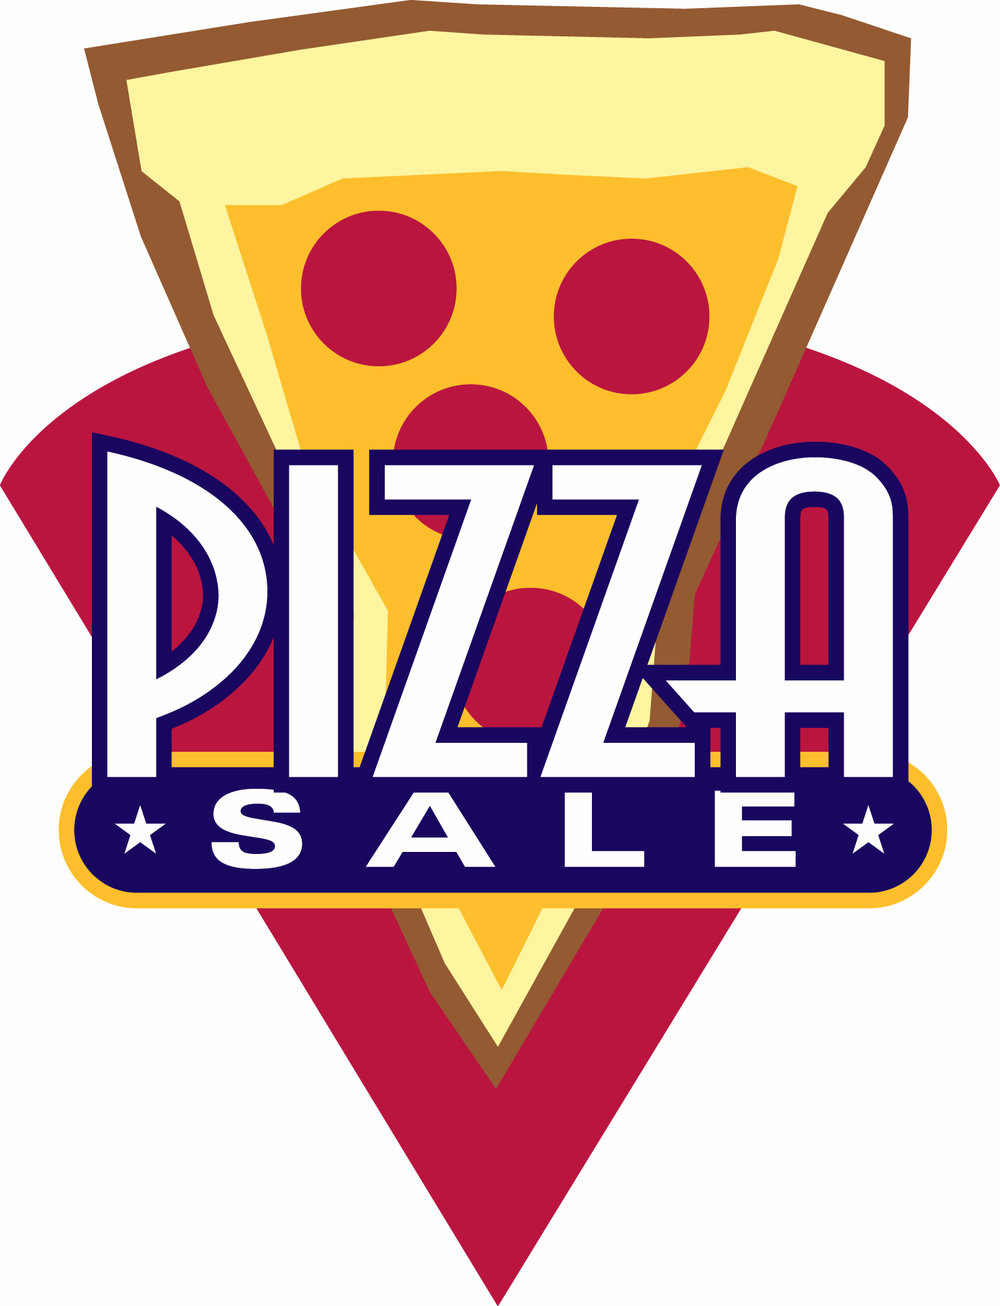 Pizza Sale Orders NOW Online! Share out the link with your family so they can order and pay right on our website! You can also order via the paper forms sent home-whichever option works best for your family! Pizza Pick up is 11/11. Thank you for supporting our school:  http://i4learning.org/pizza-sale/   We need Volunteers!  Click to View our Pizza Sale Sign Up Genius